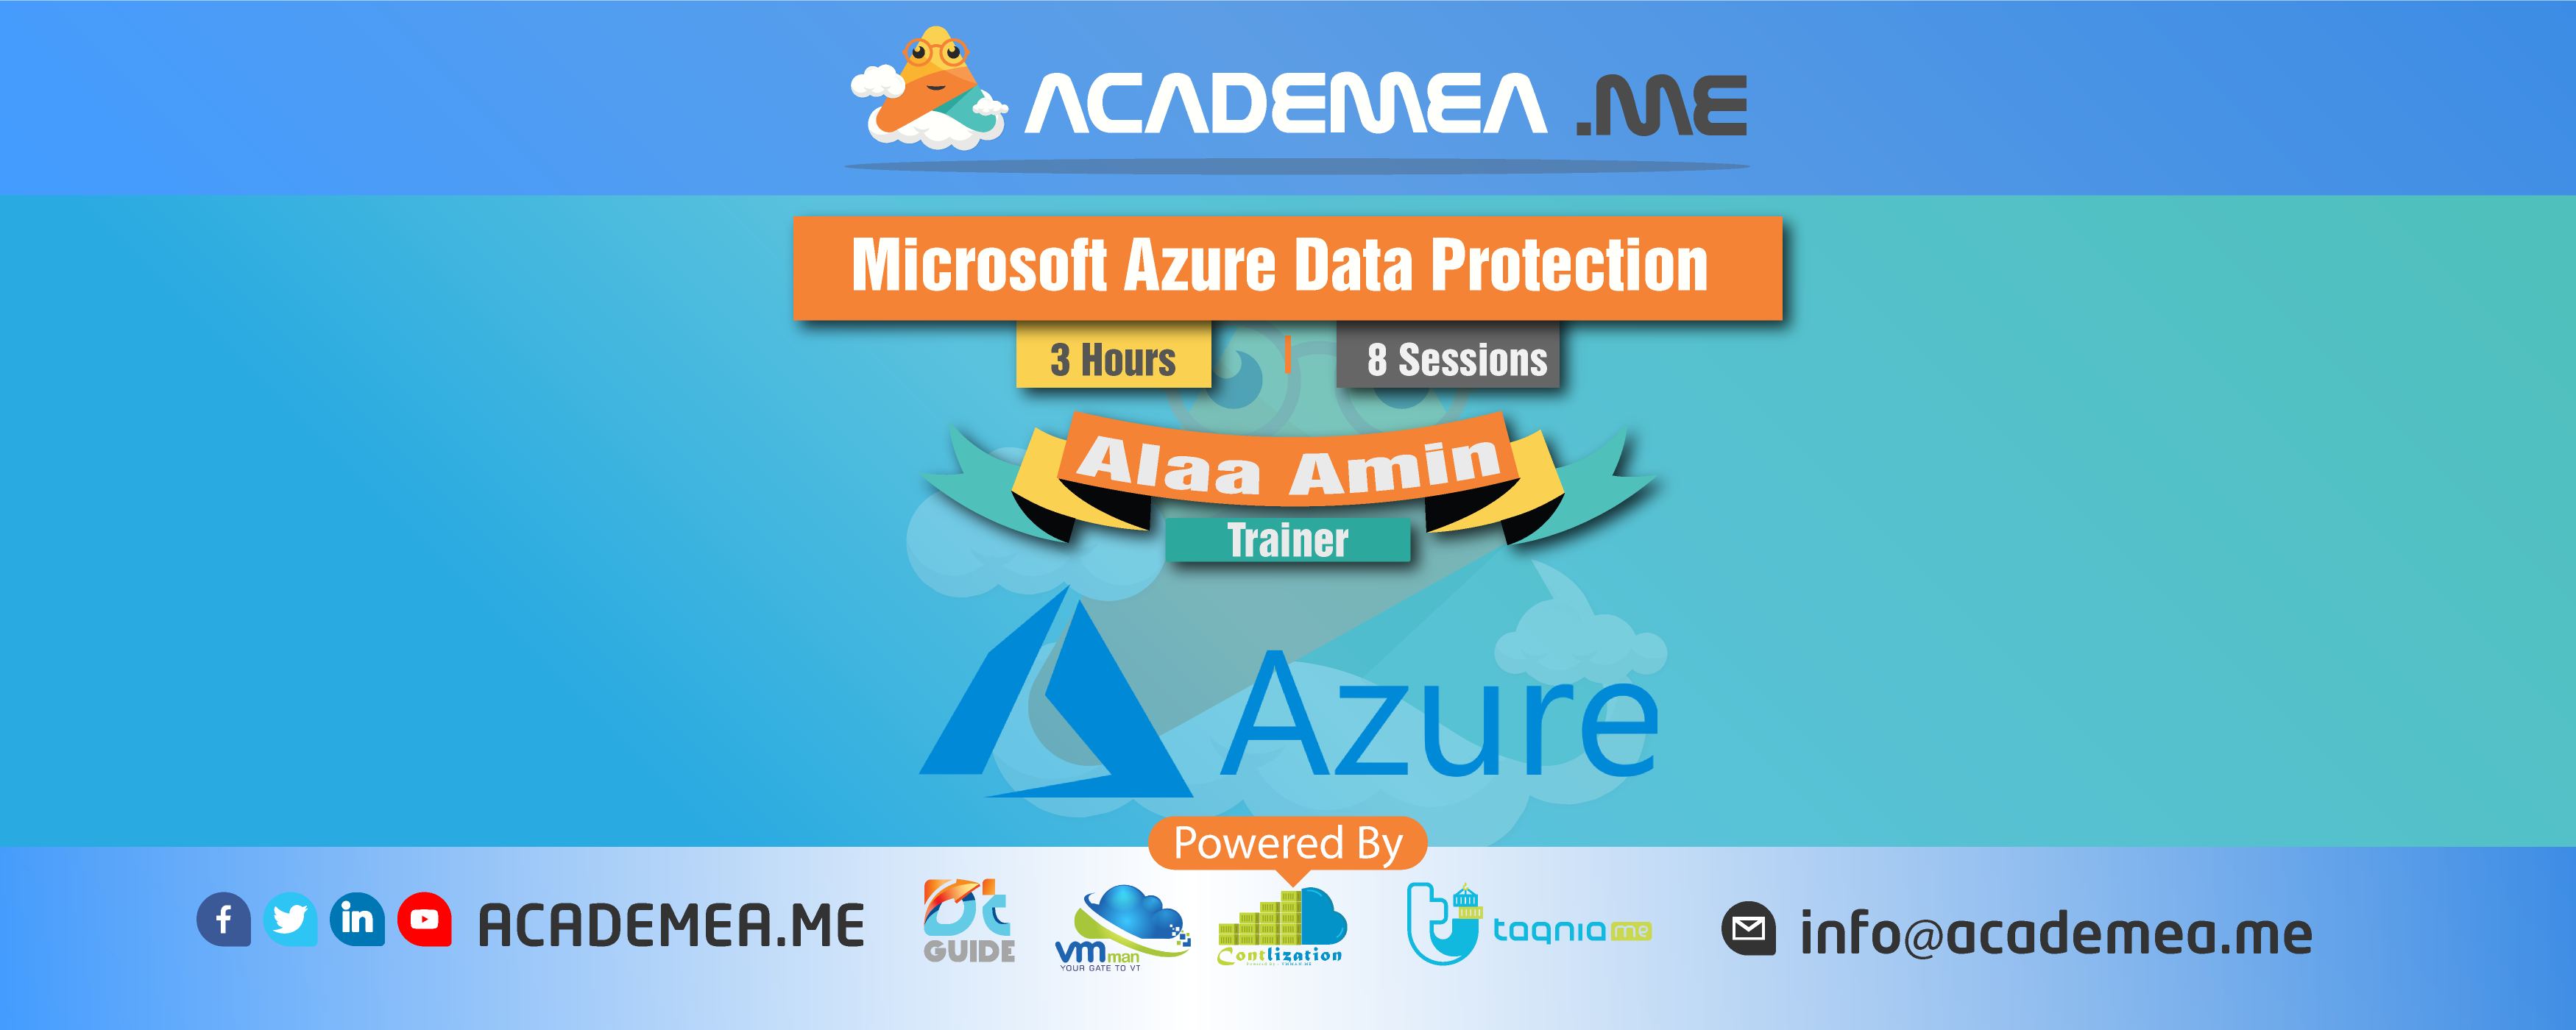 Microsoft Azure Data Protection